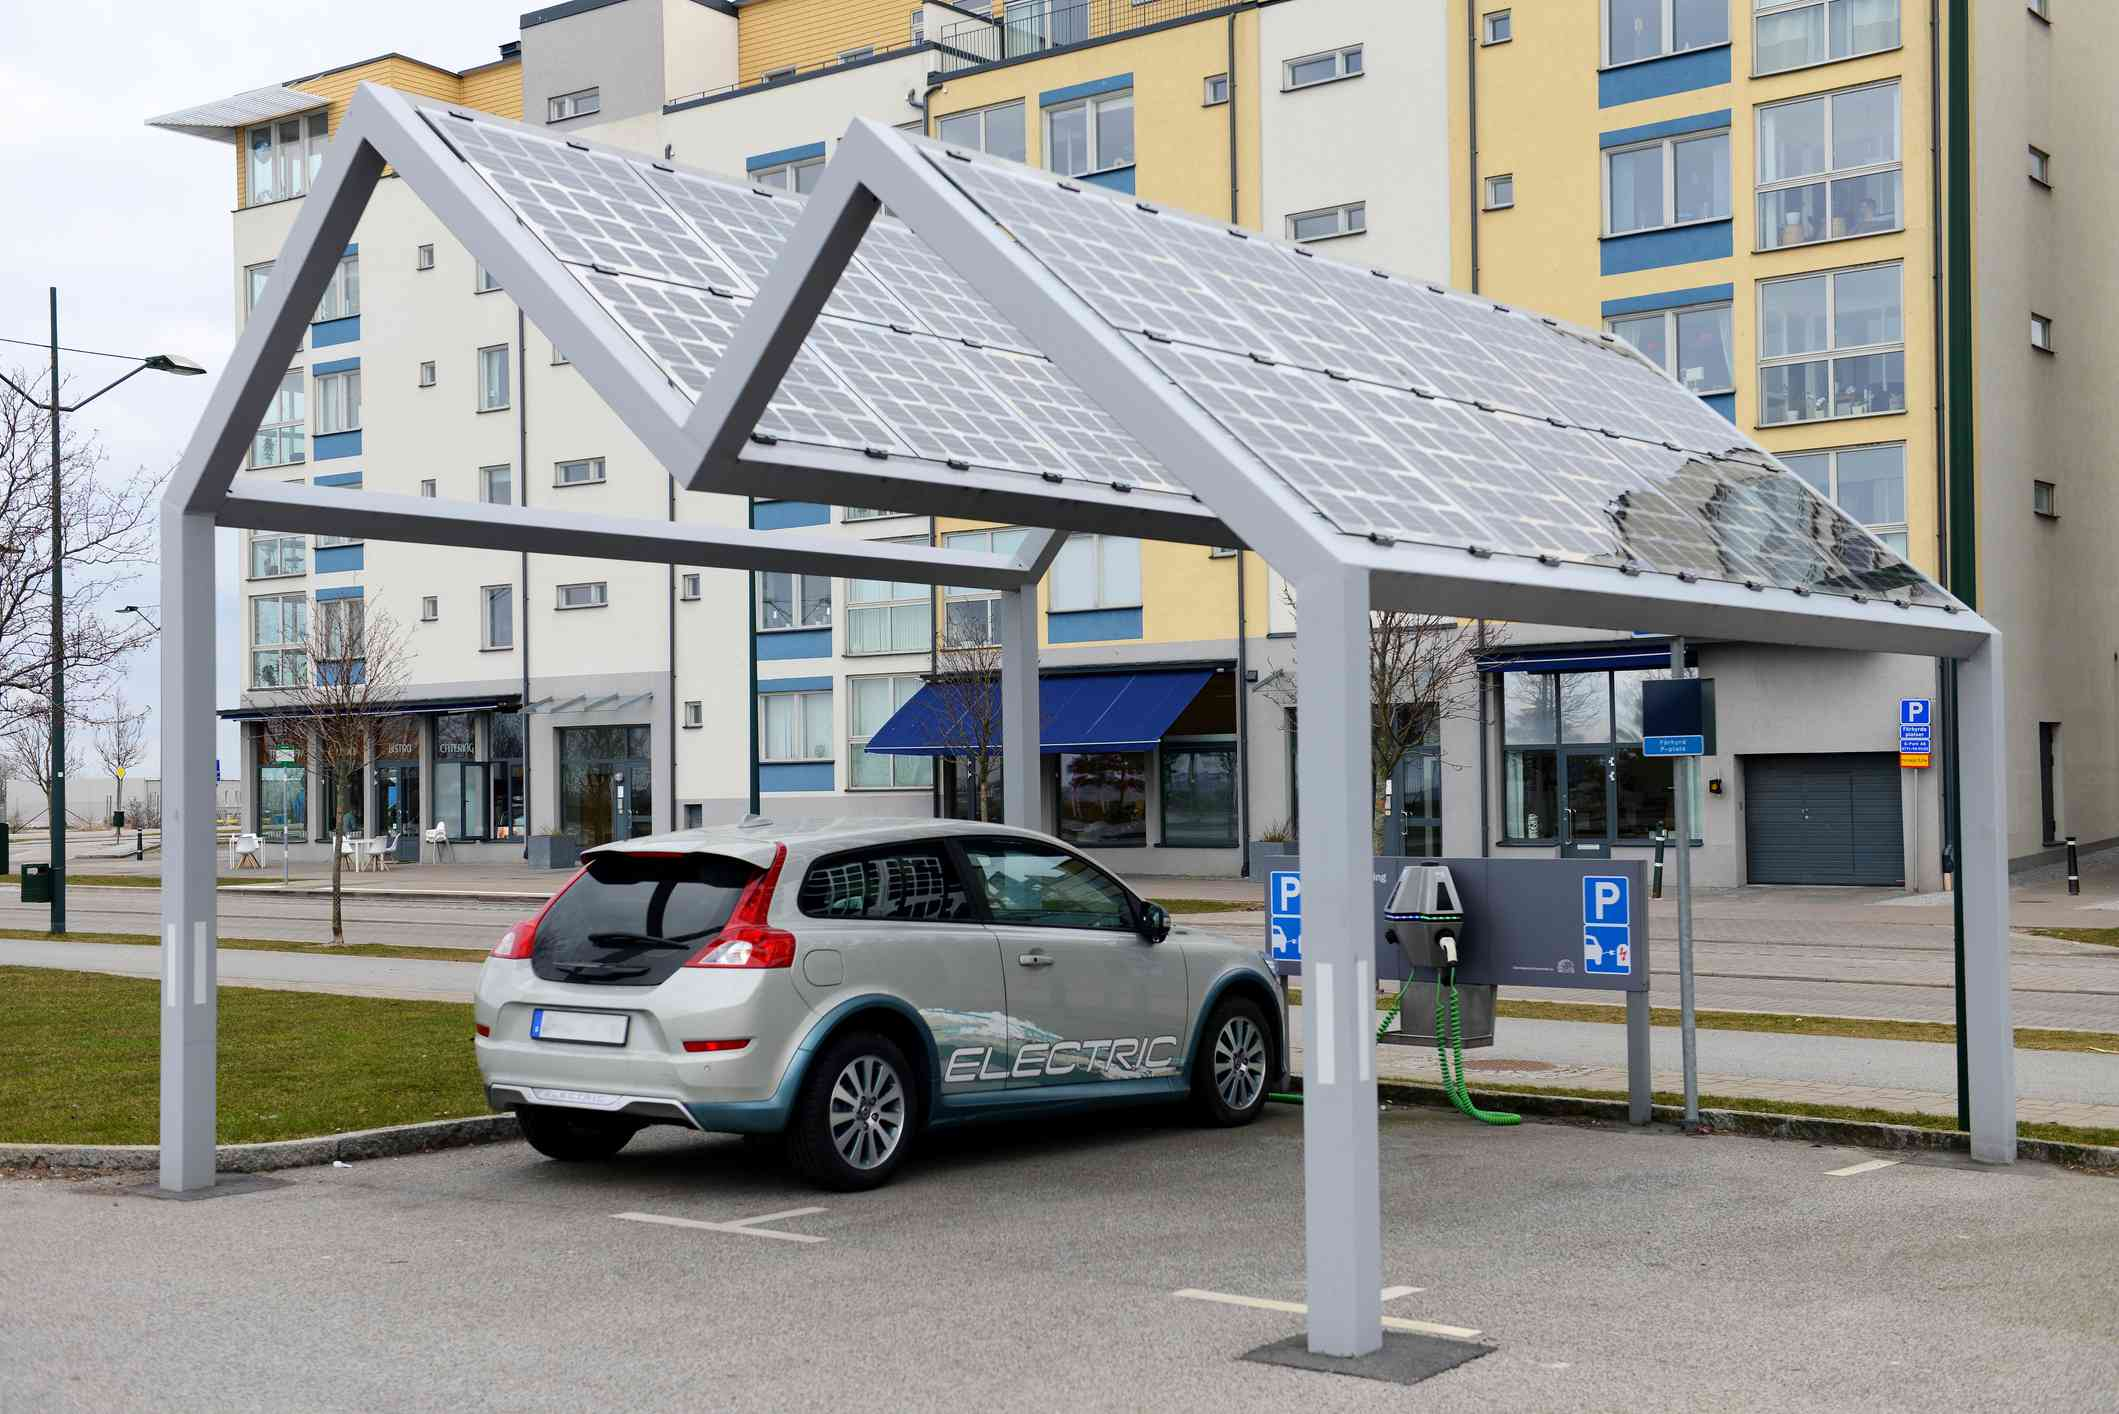 Electric vehicle charged with solar energy at an EV charging station.